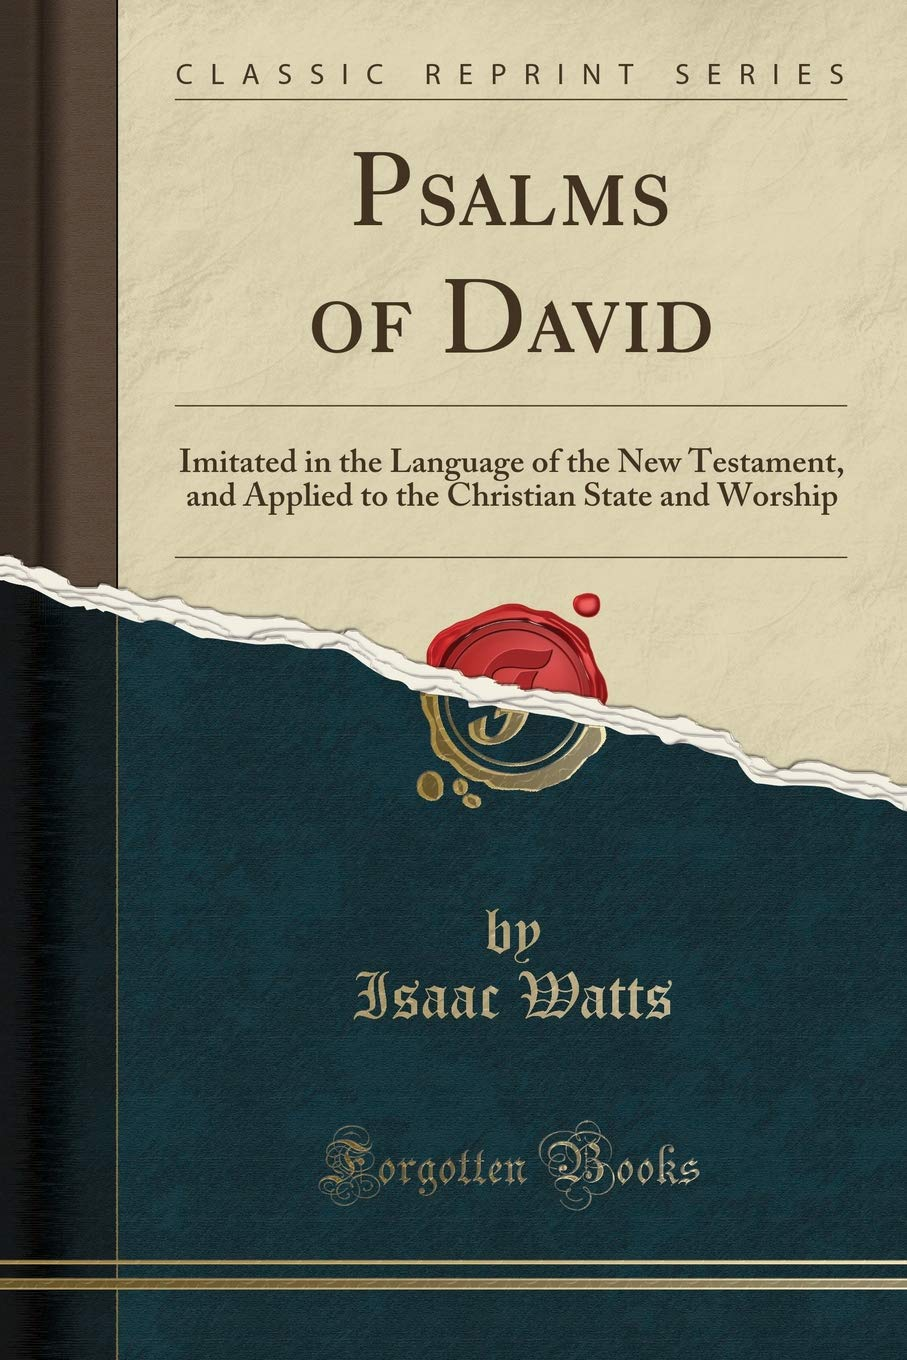 Psalms of David: Imitated in the Language of the New Testament, and Applied to the Christian State and Worship (Classic Reprint)